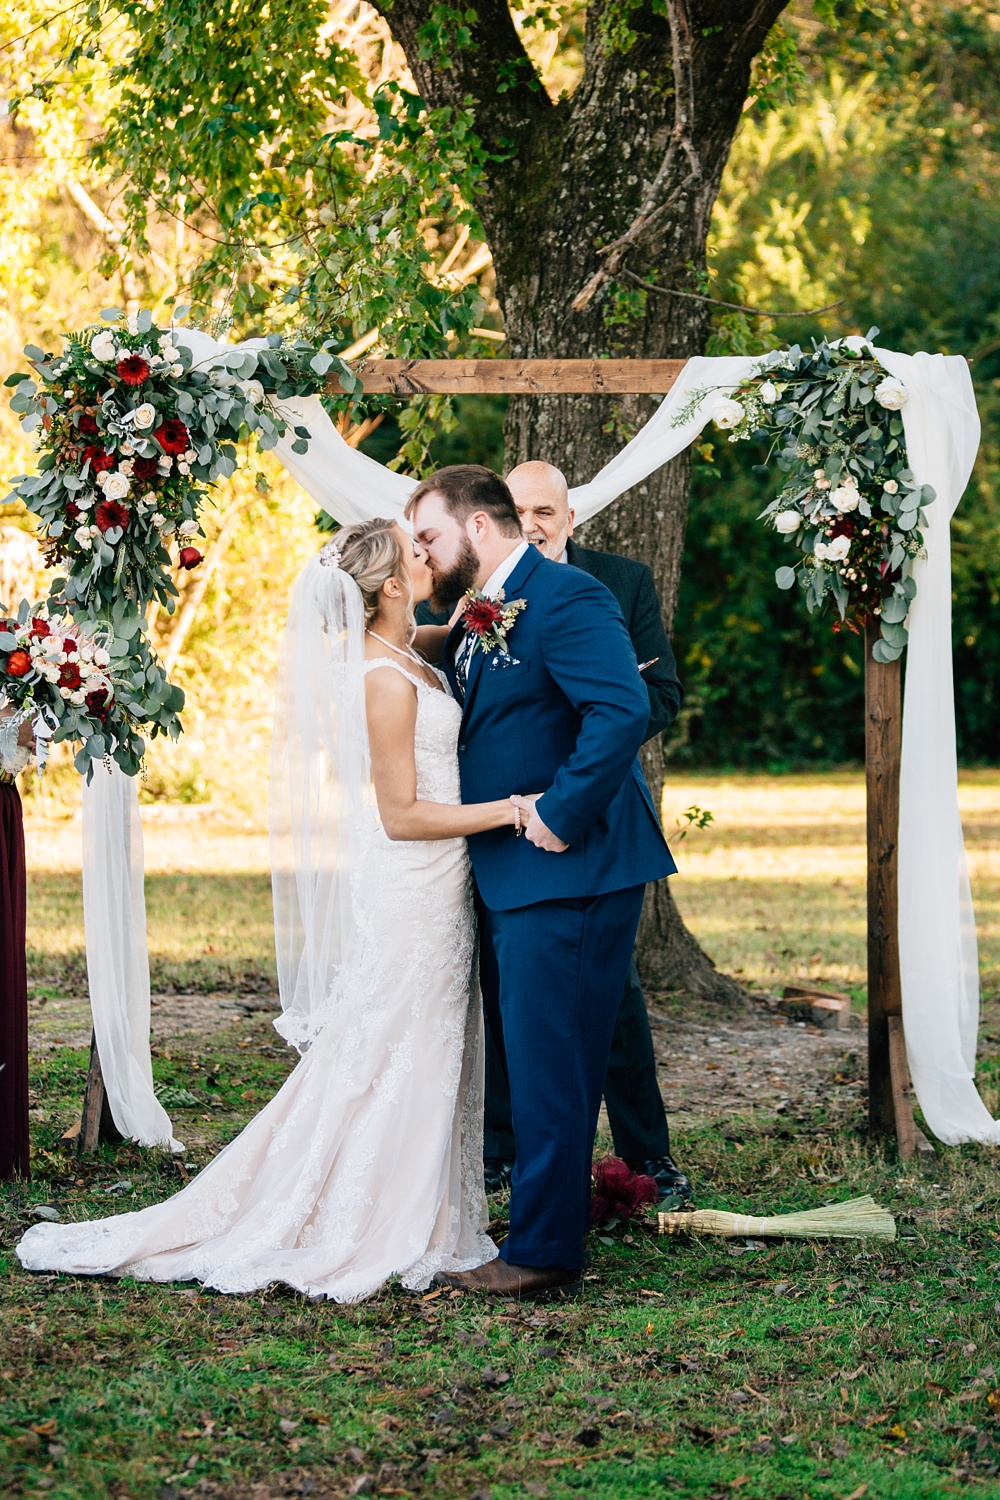 couples shares their first kiss by rachael bowman photography